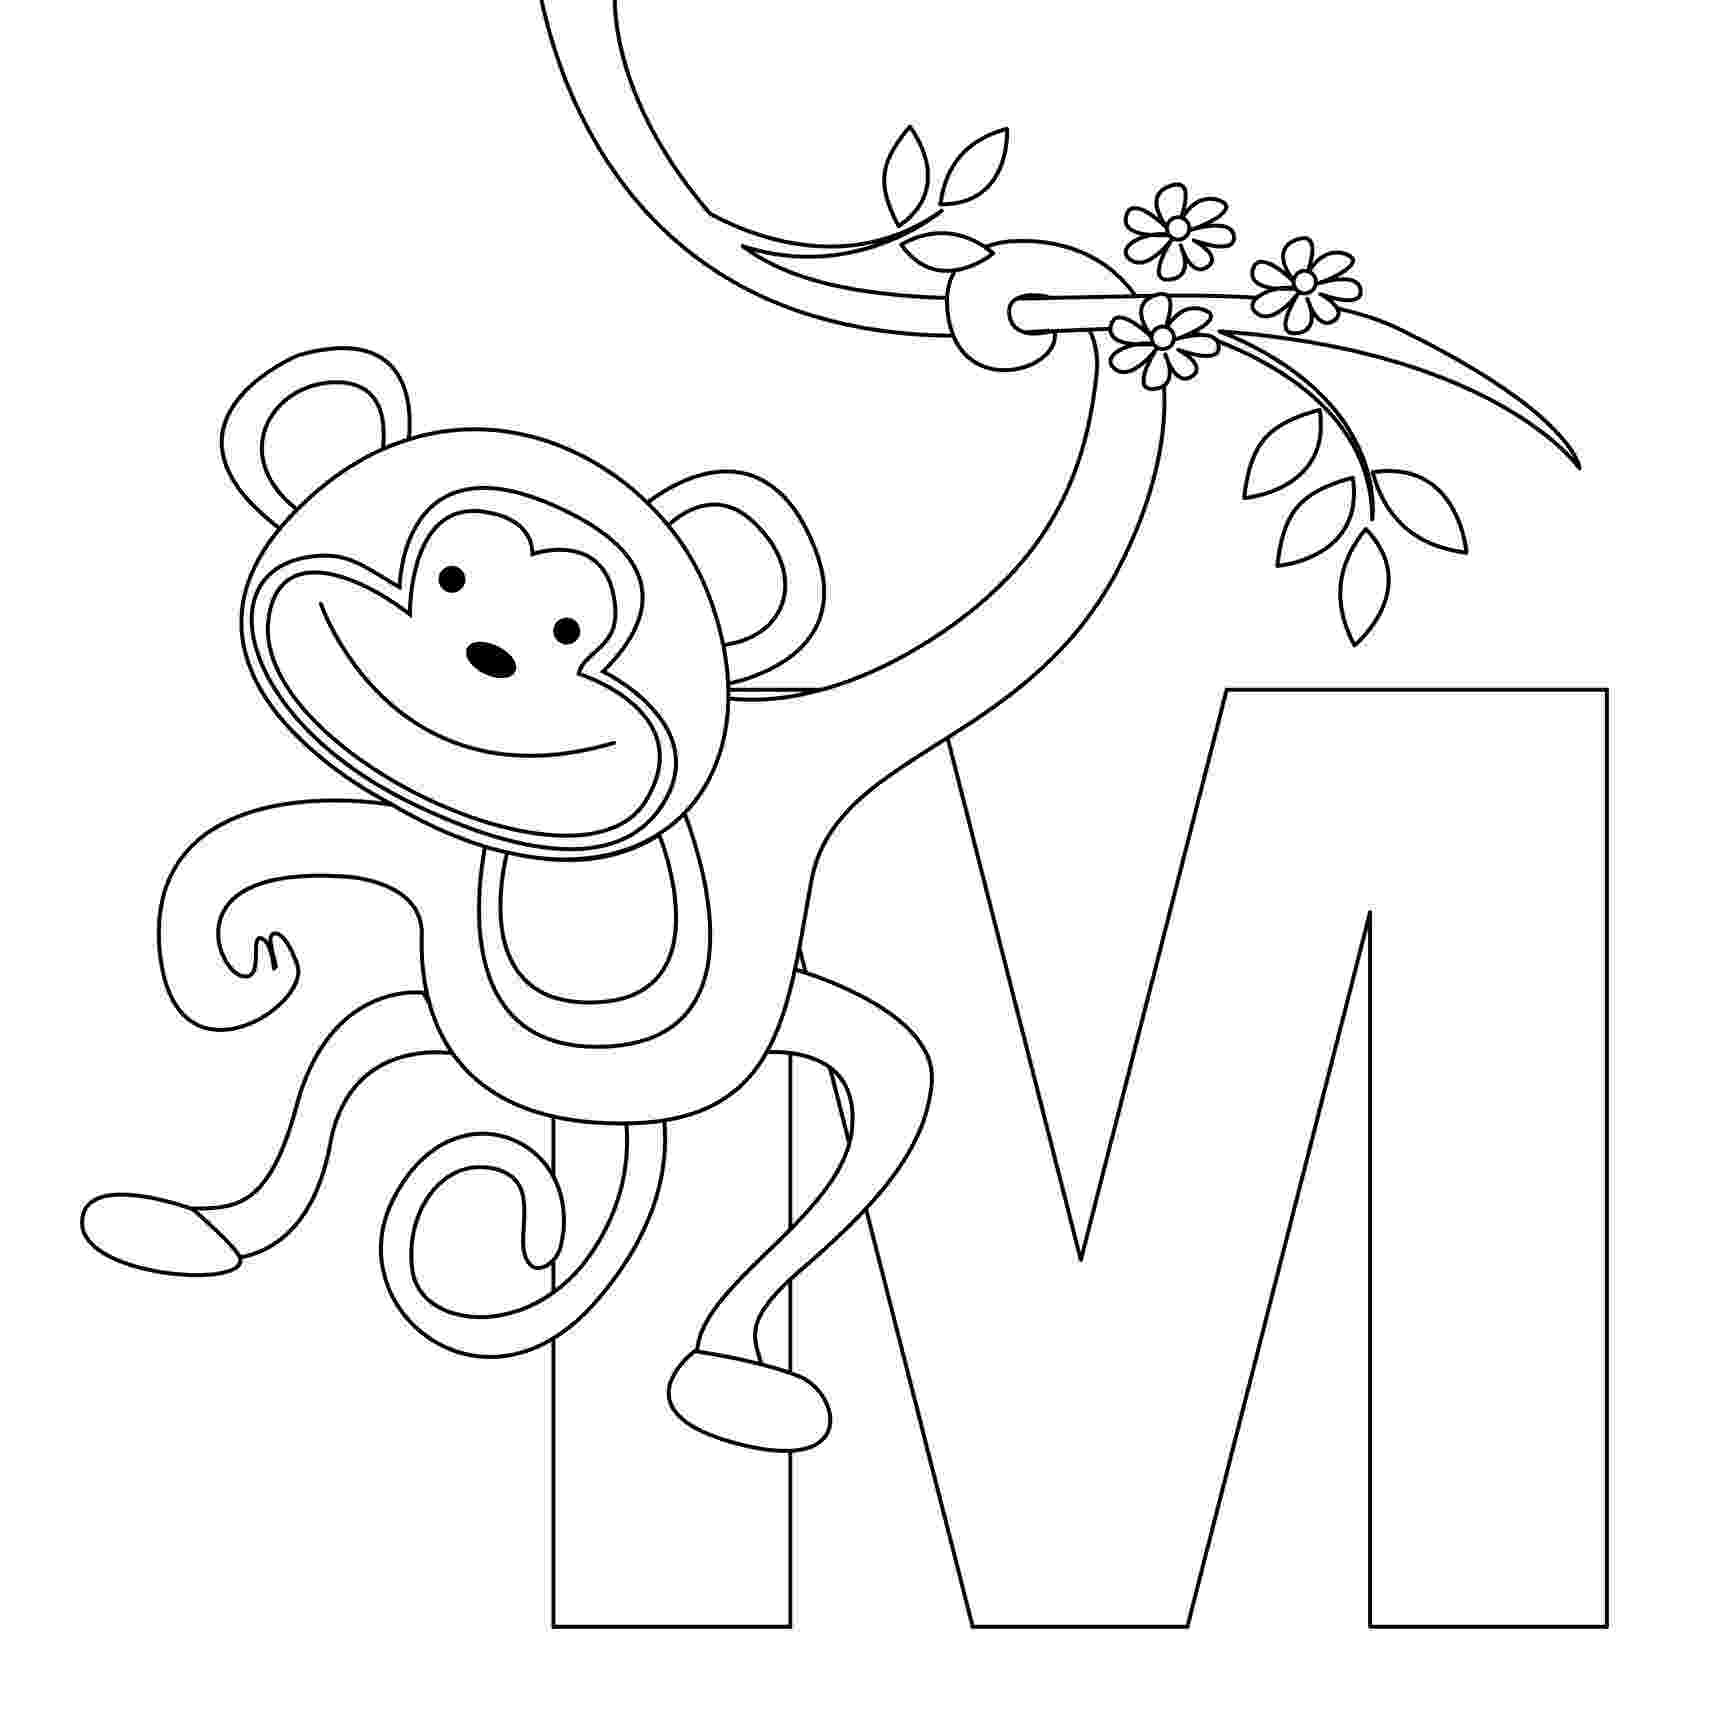 letter i coloring pages free printable alphabet coloring pages for kids best letter coloring i pages